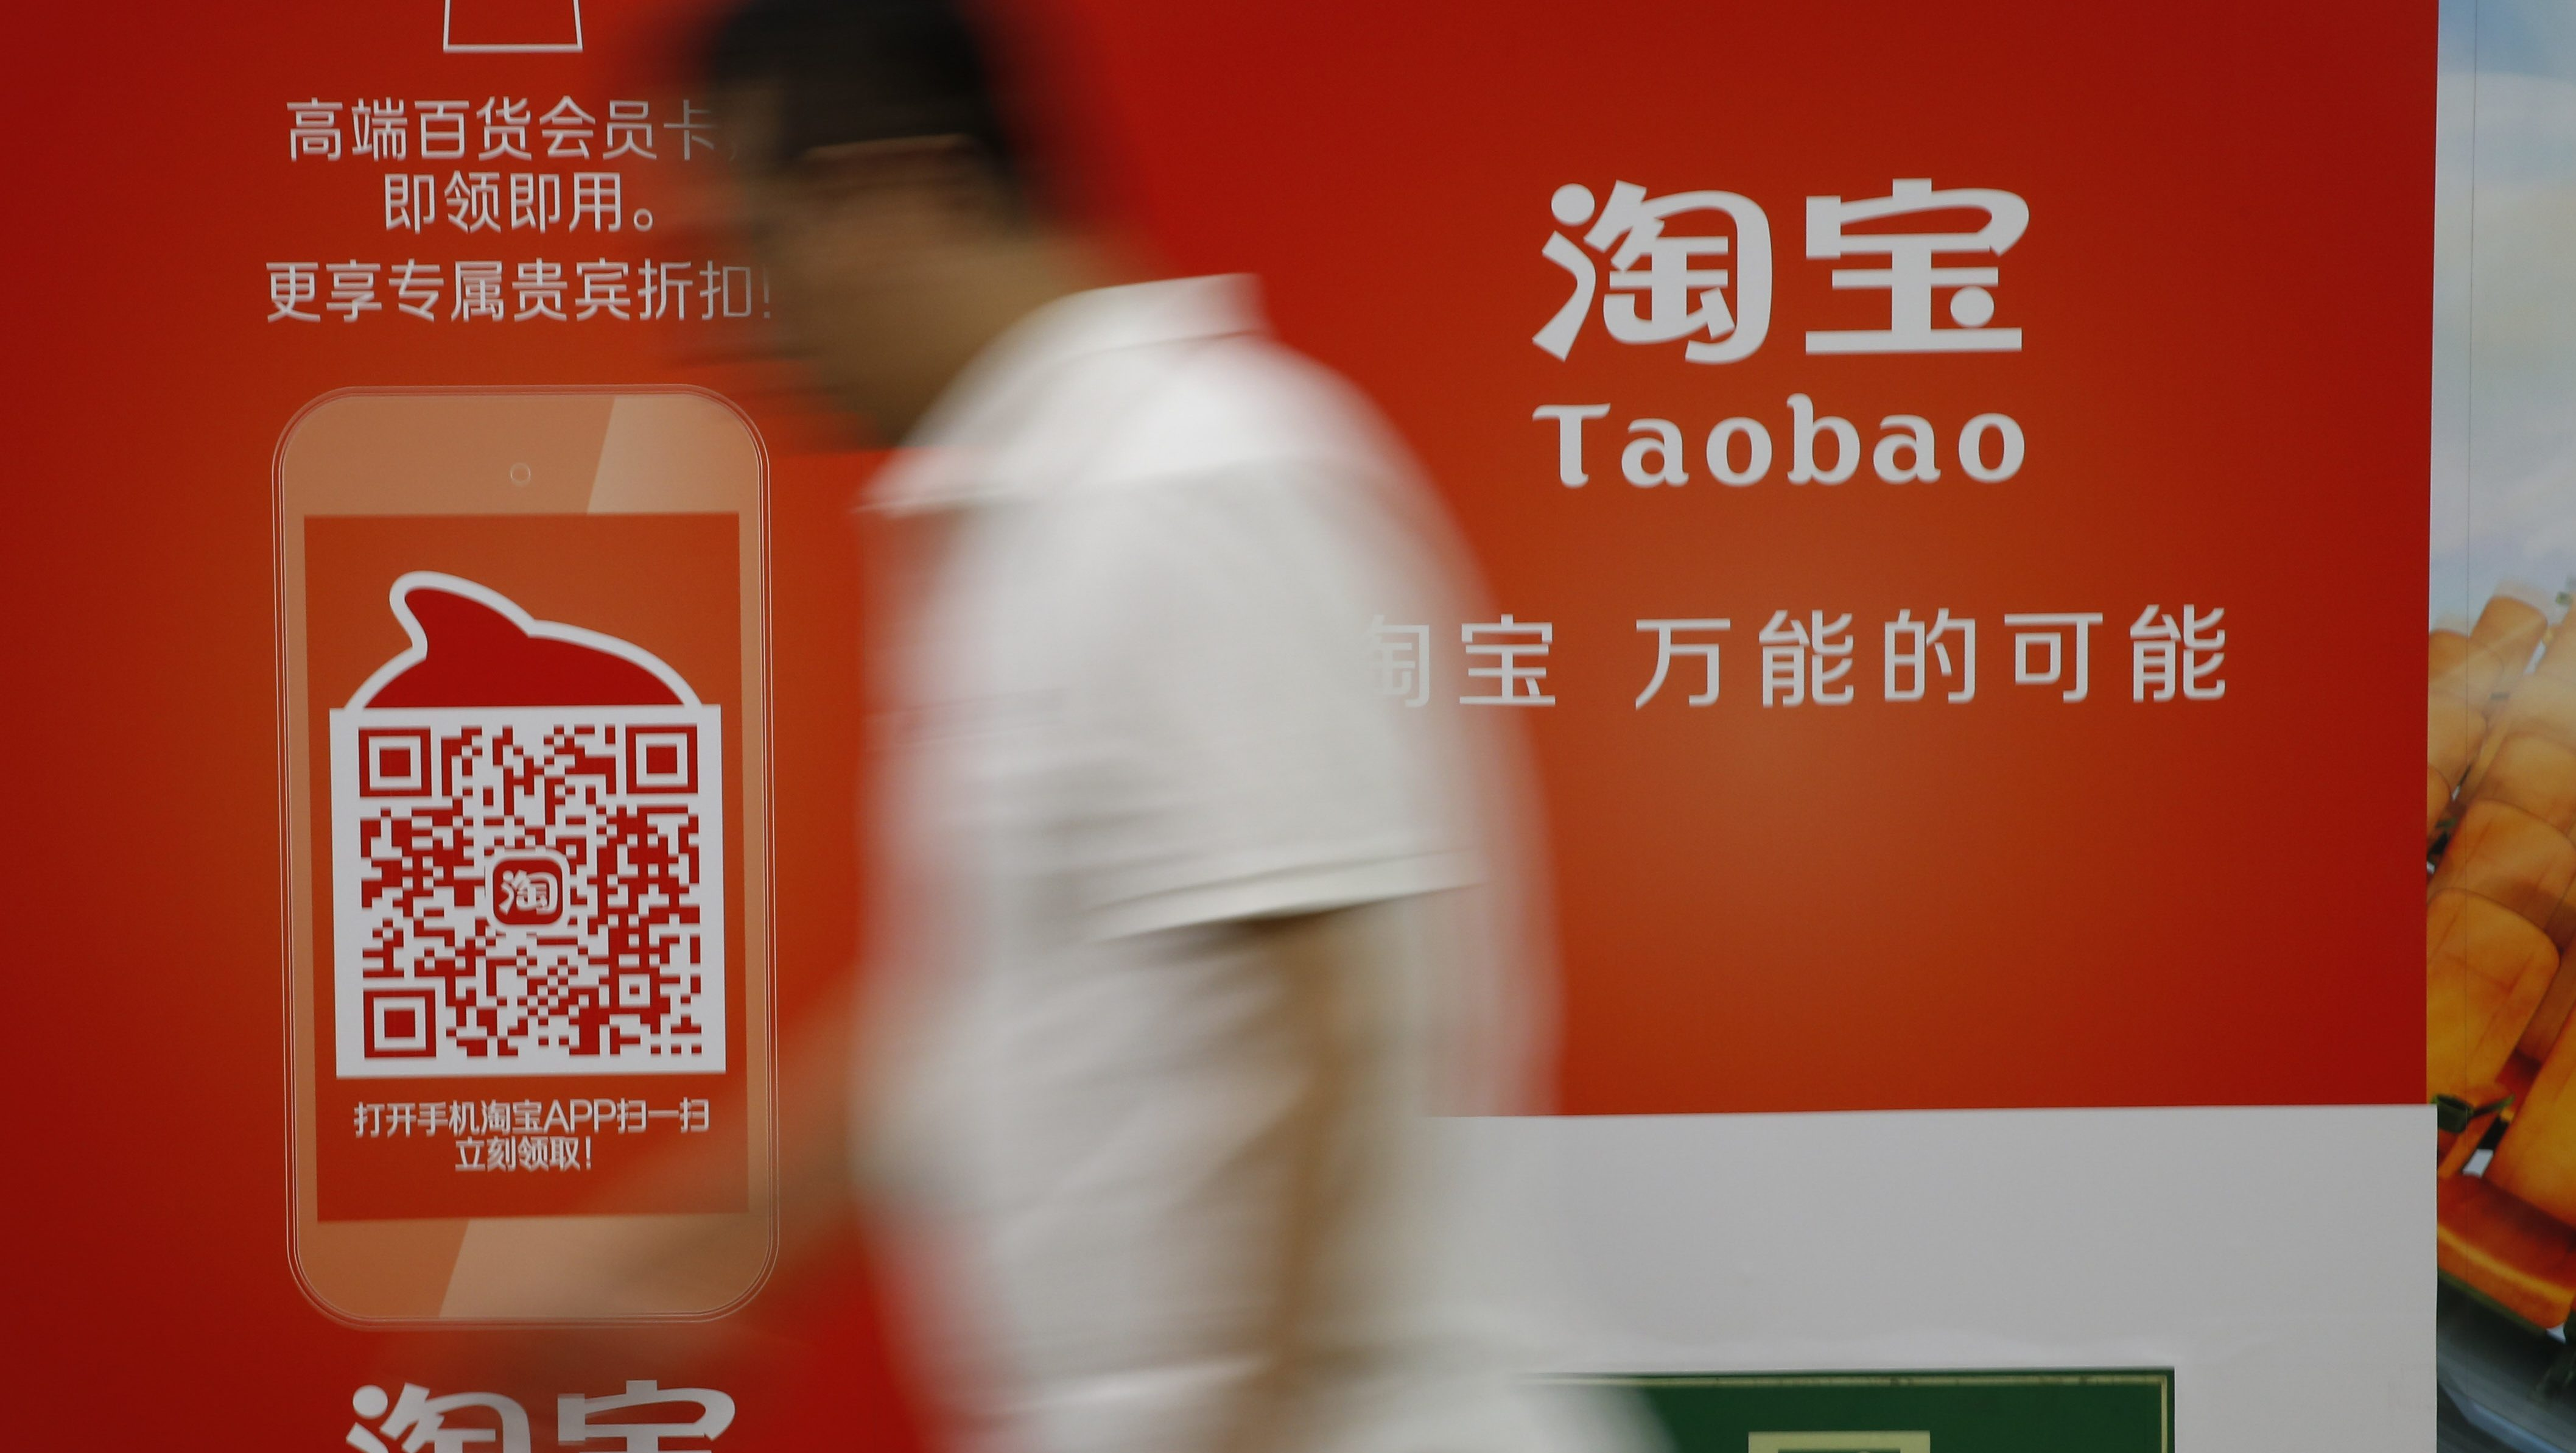 A man walks past an advertising billboard showing the mobile app of Alibaba's Taobao consumer-to-consumer site at a subway station in Beijing Thursday, Sept. 18, 2014. Alibaba Group's U.S. stock offering is a wakeup call about an emerging wave of technology giants in China's state-dominated economy.